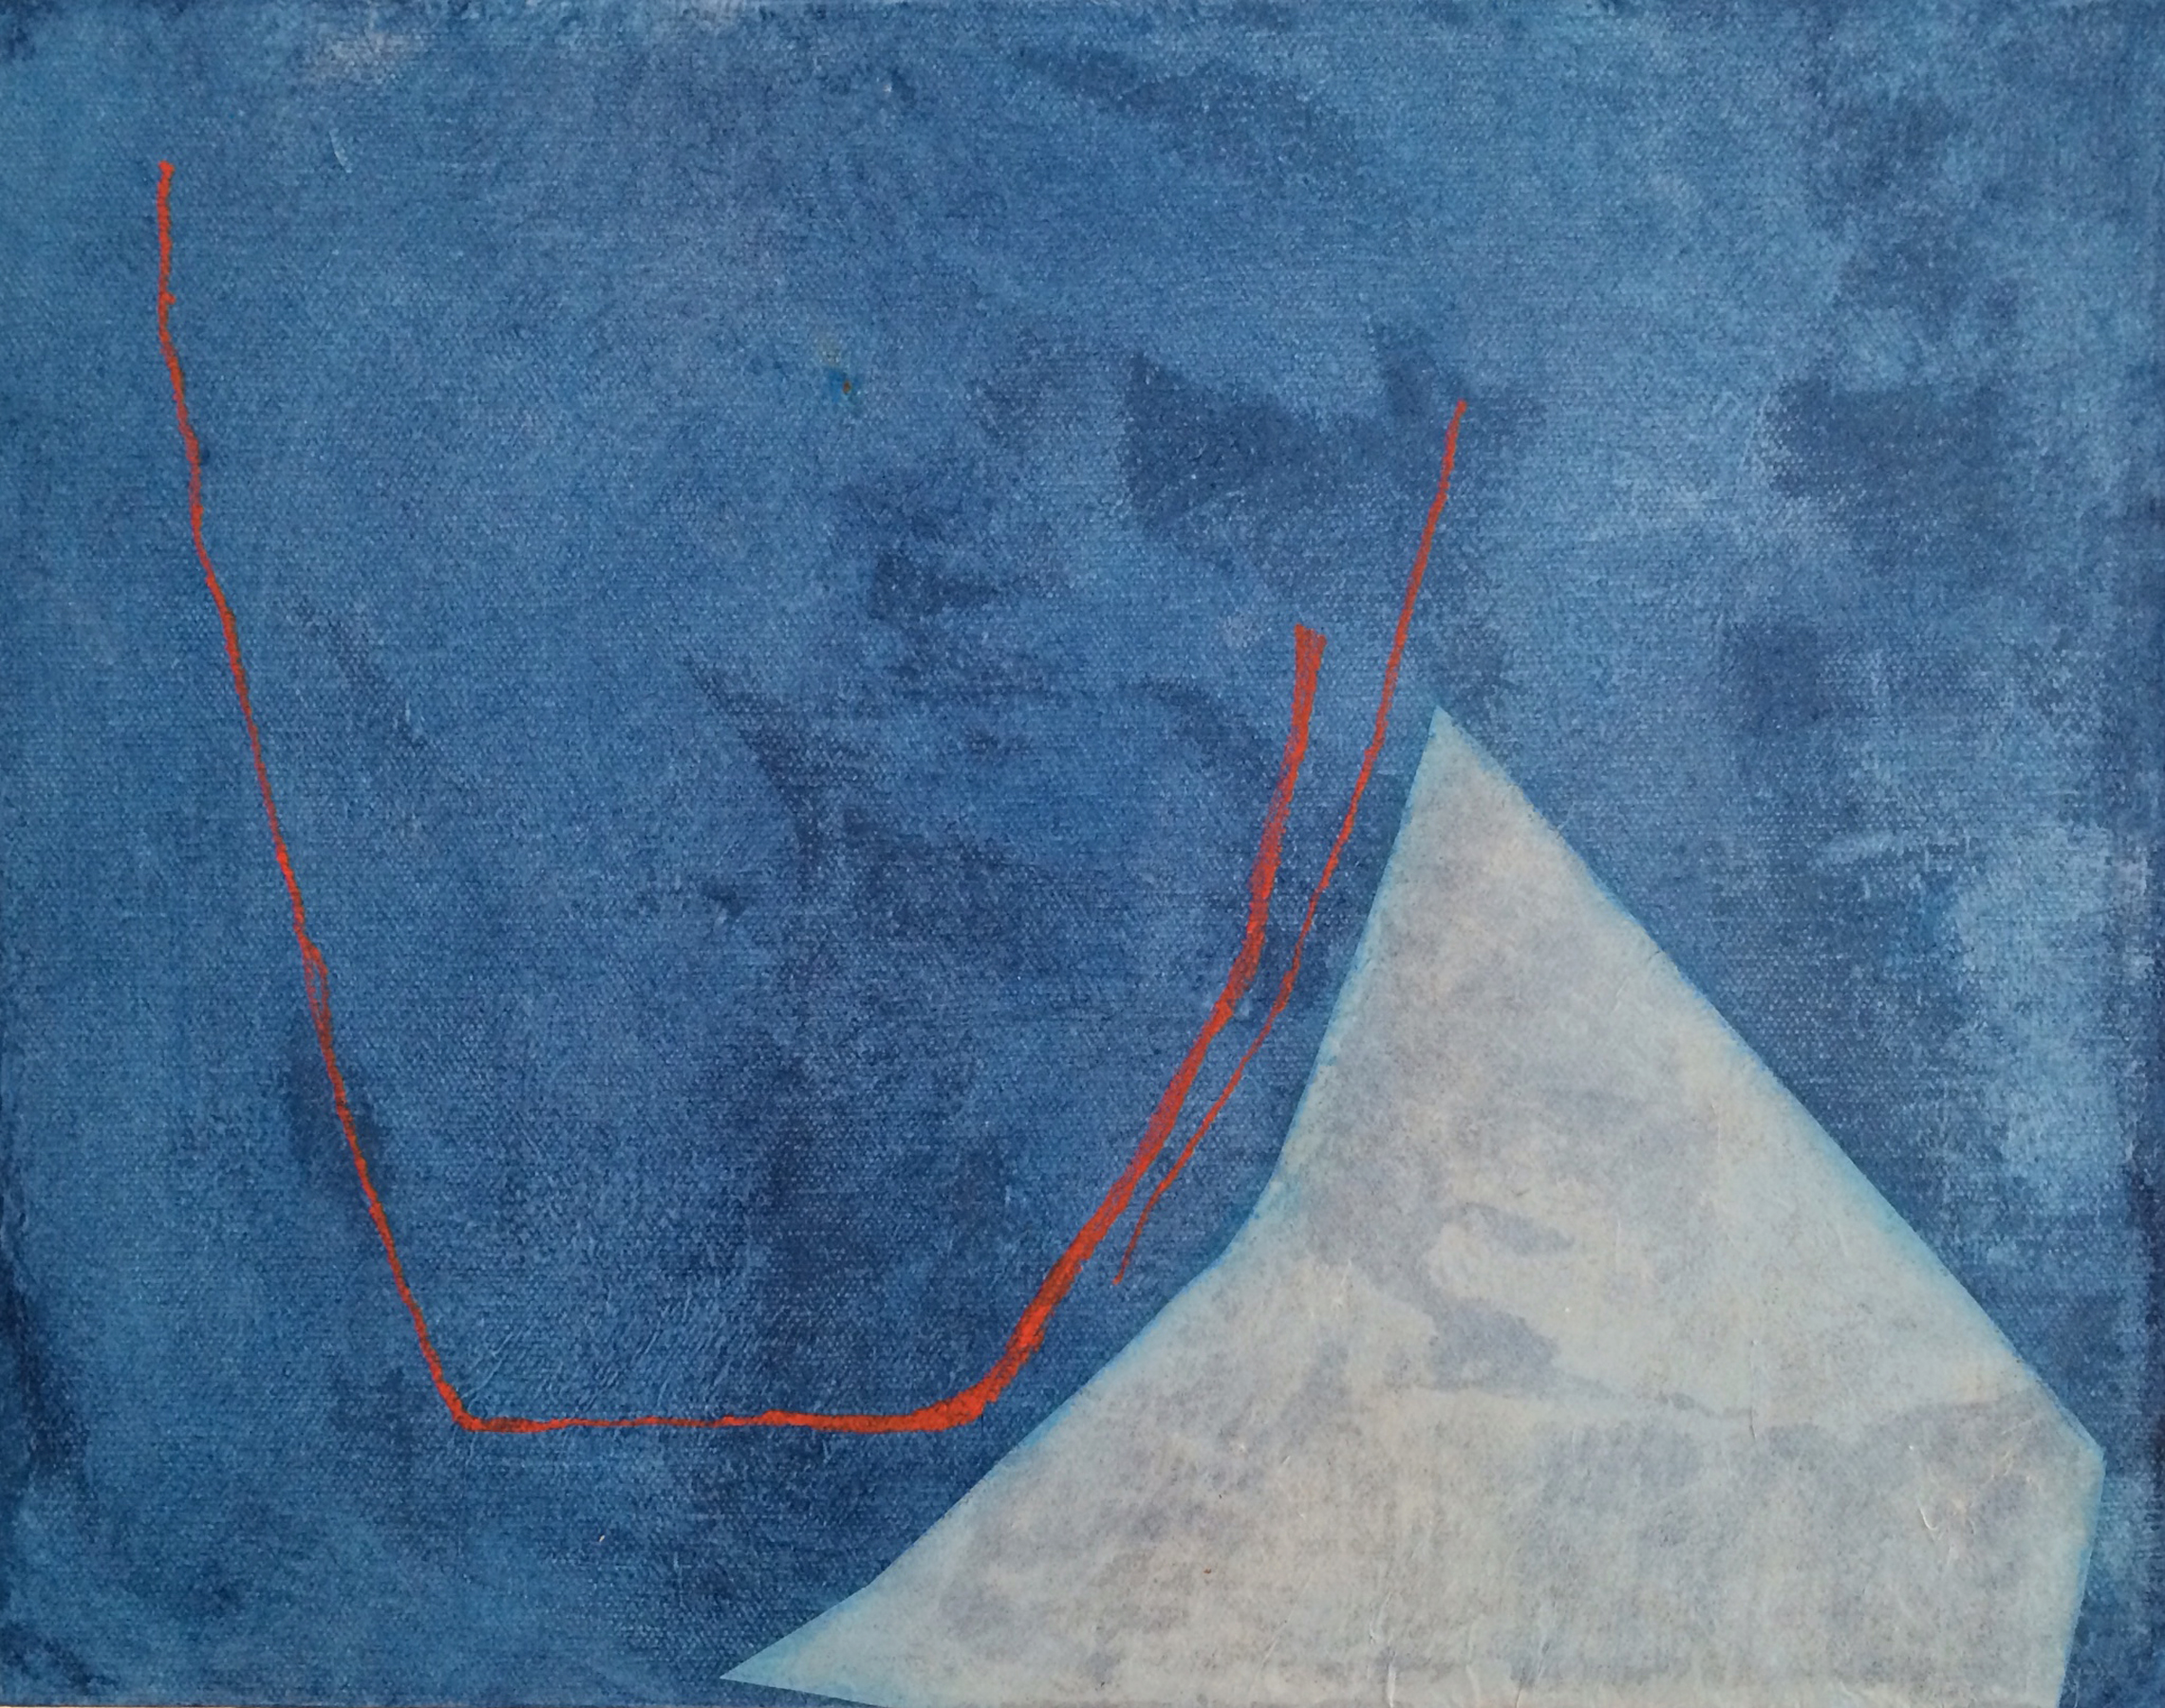 Pale Form on Blue with Red Lines by Diane Englander, 2014, mulberry paper, acrylic and pencil on canvas, 11 x 14 in, $650